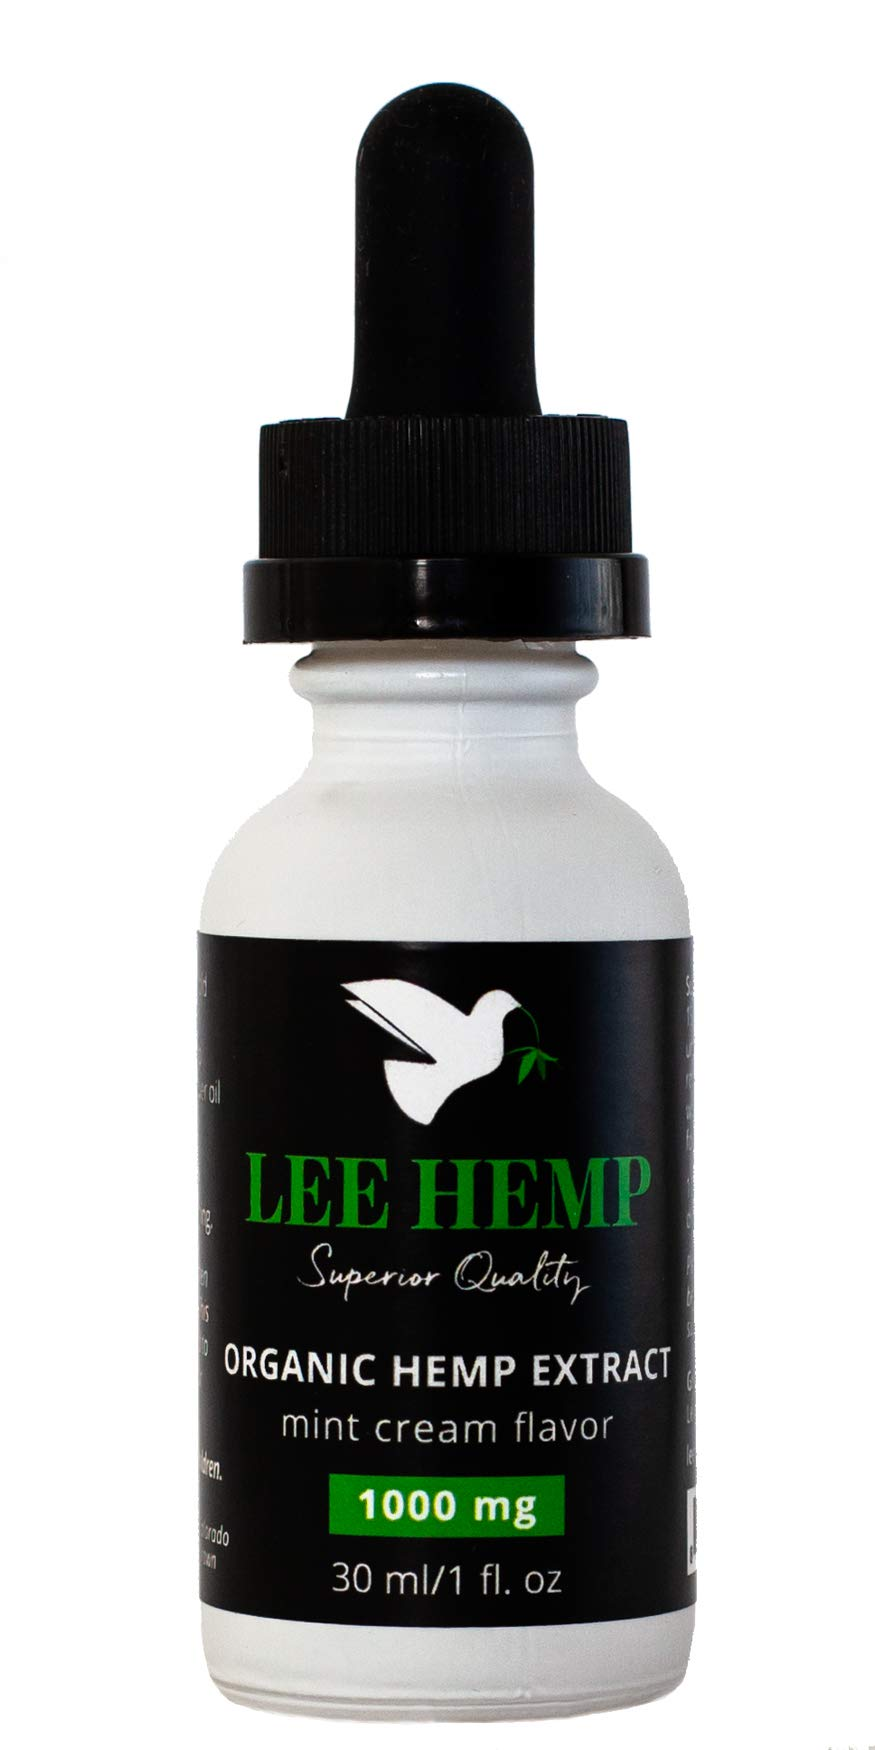 Full Spectrum Organic Hemp Extract - 1000 mg Mint Cream Flavor - 1 oz (30ml) 40 Servings. Can Help with Pain, Anxiety, and Stress!